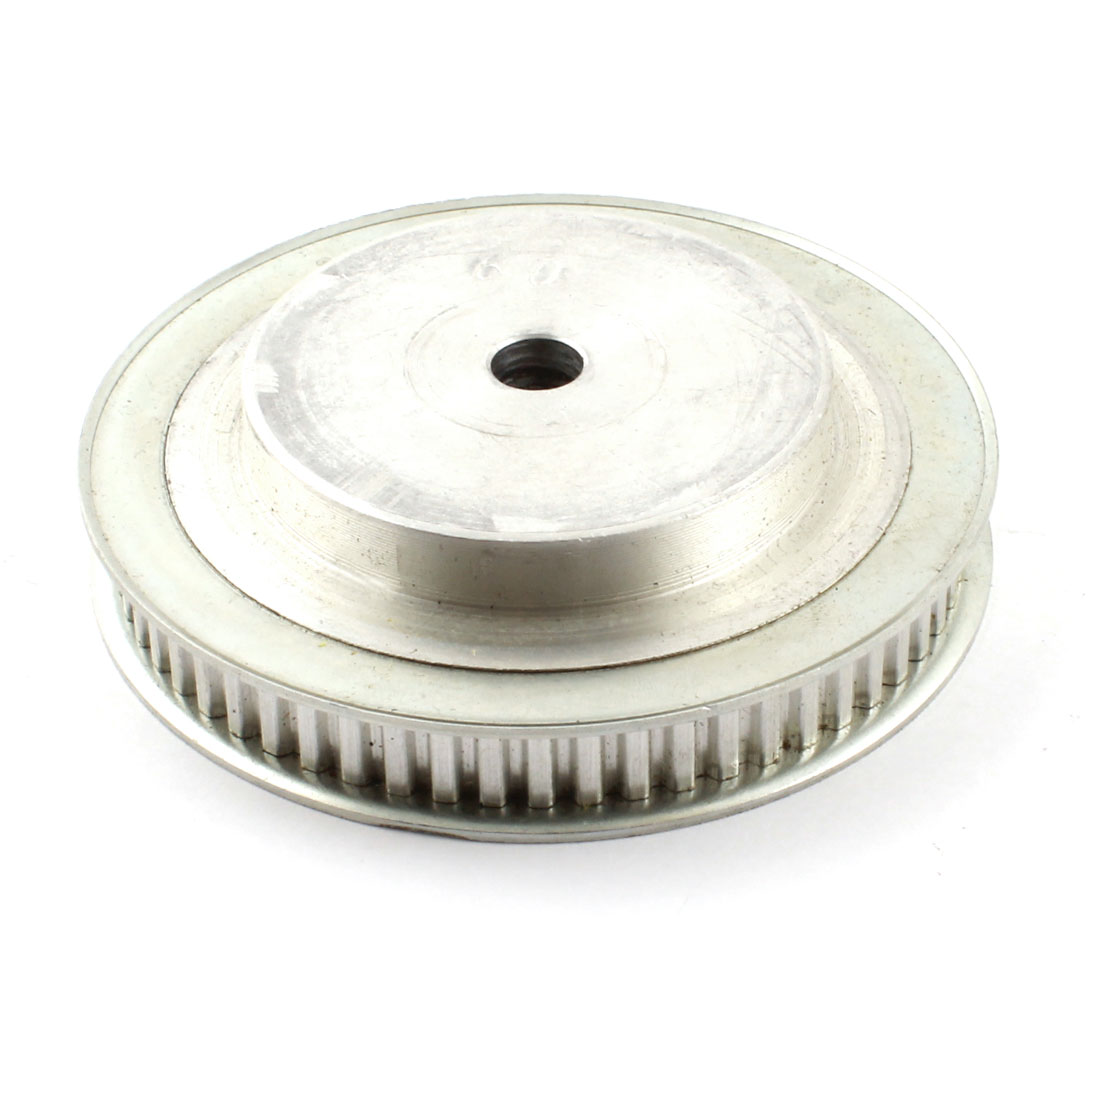 XL60 60 Teeth 11mm Width 10mm Bore 5.08mm Pitch Aluminum Alloy Dual Flanged Groove Motor Timing Belt Pulley